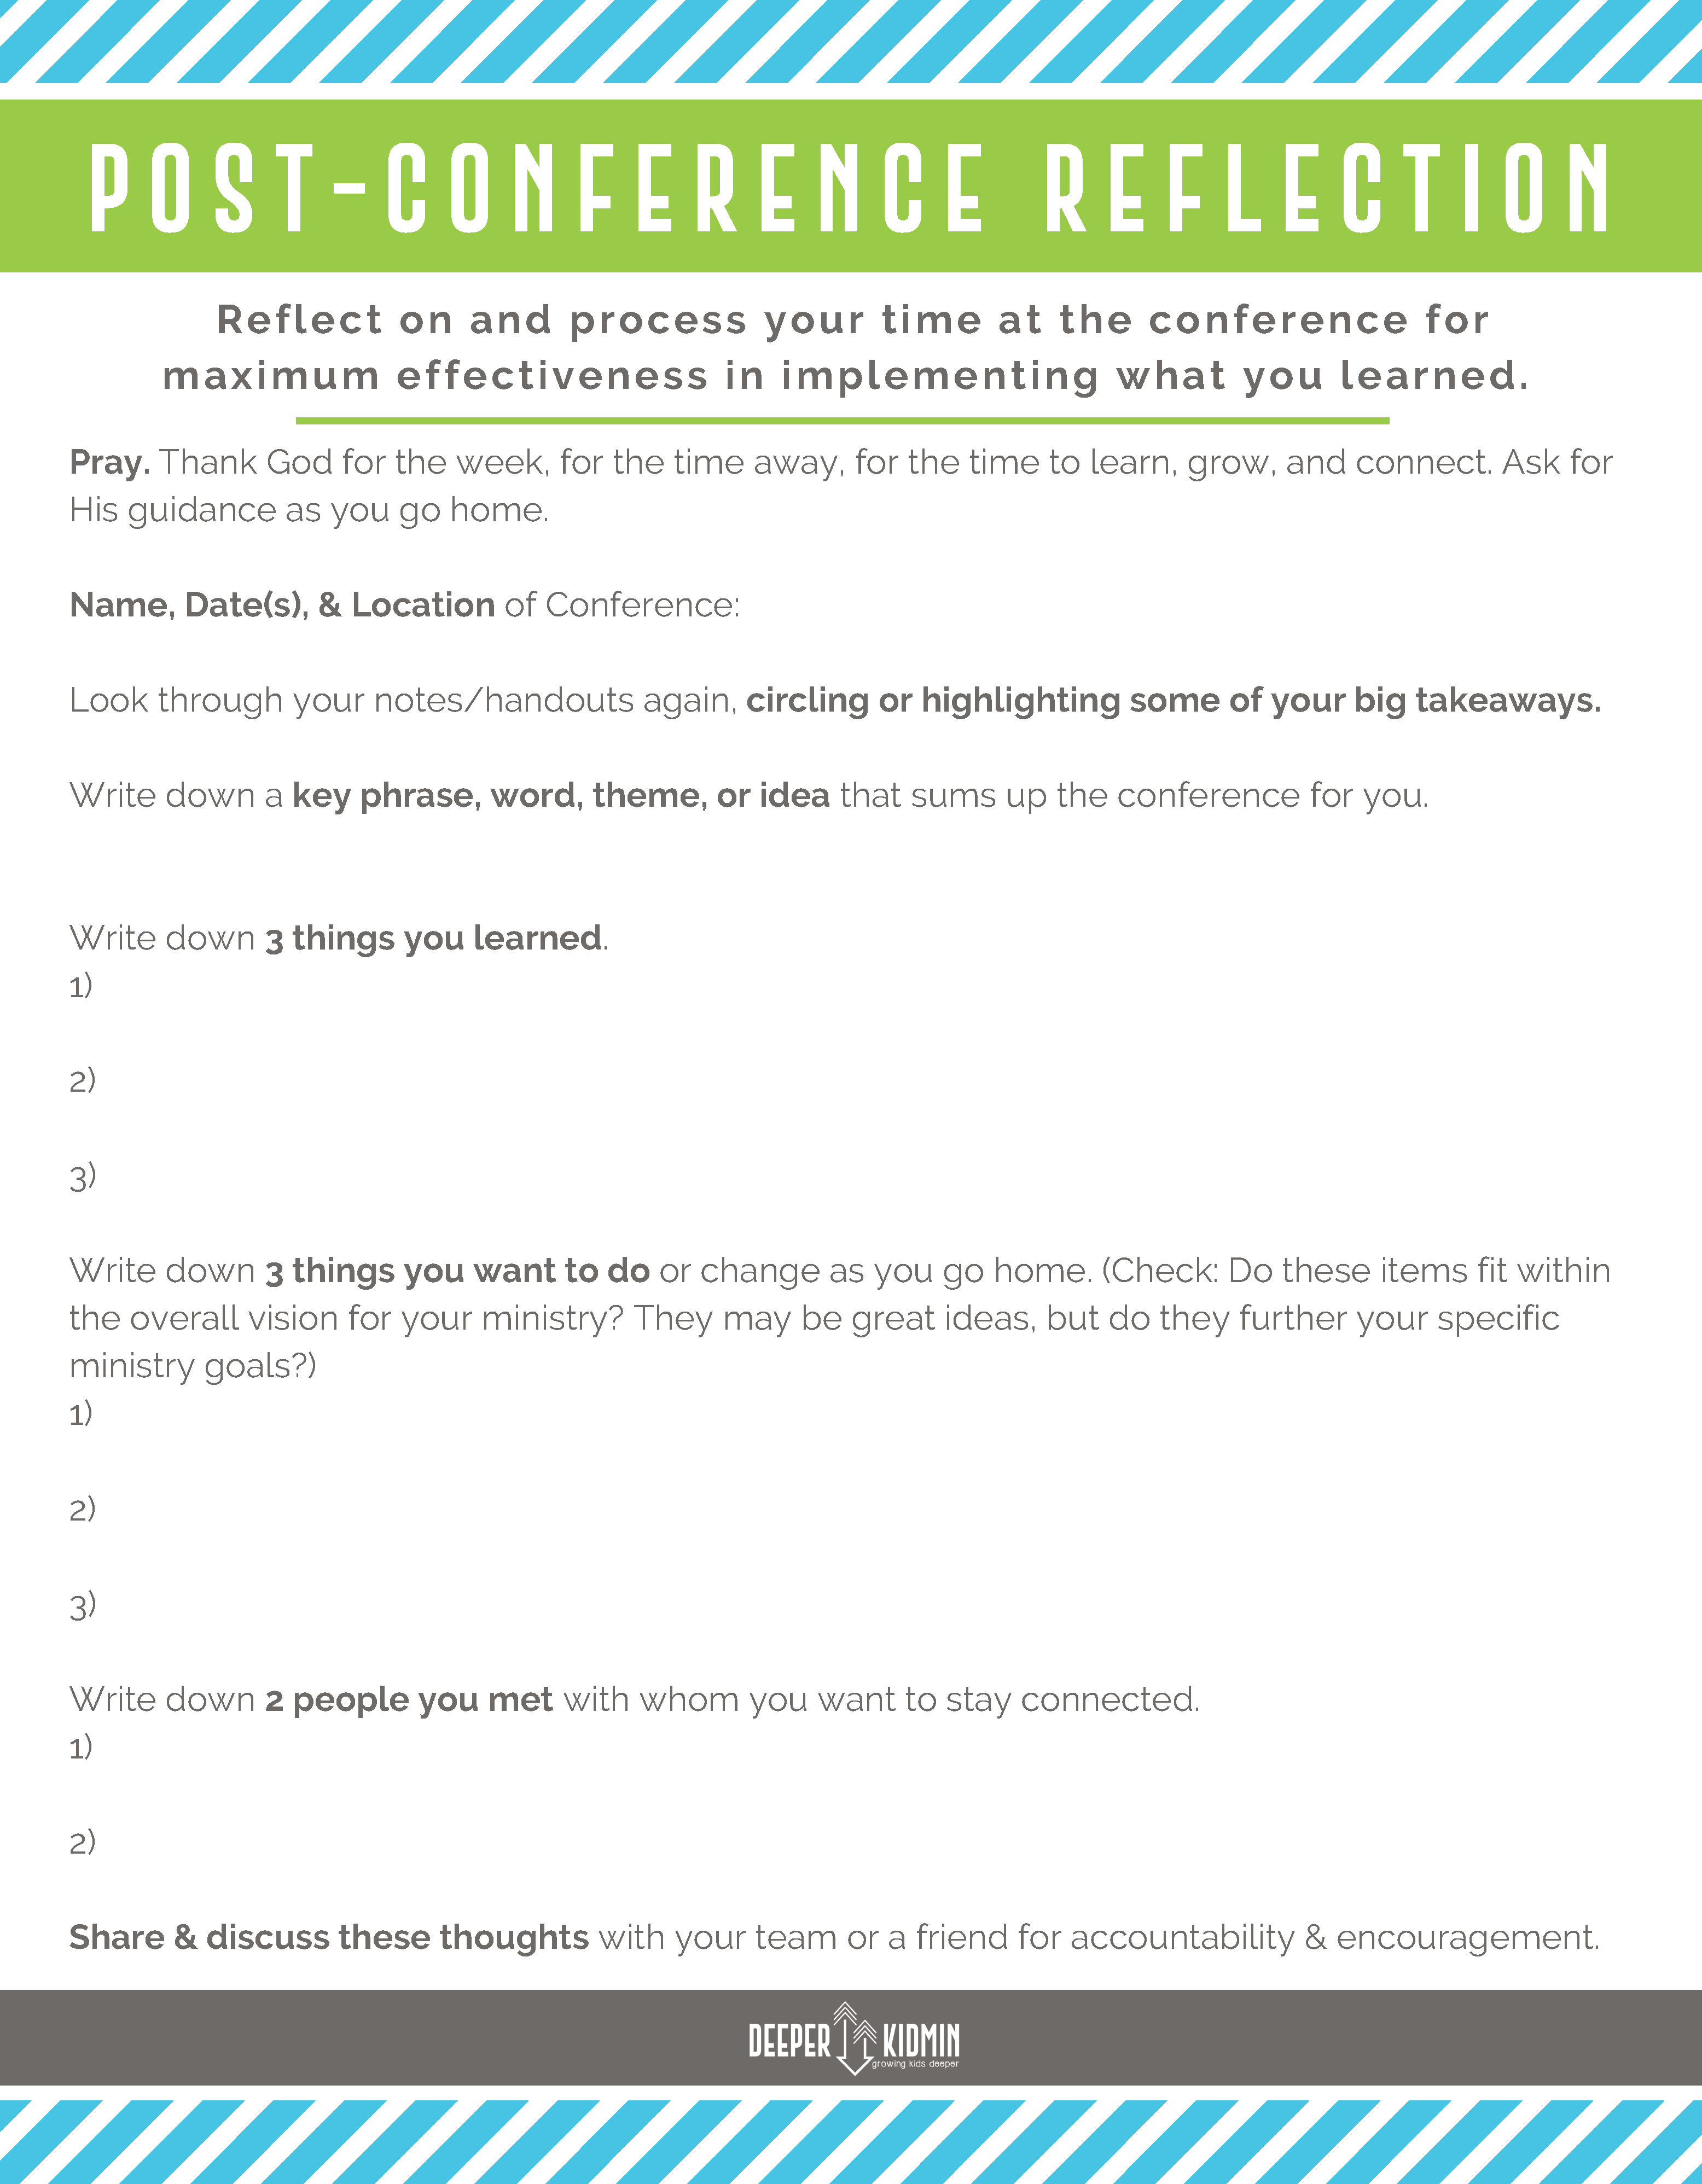 Post Conference Reflection Worksheet Process All Of The